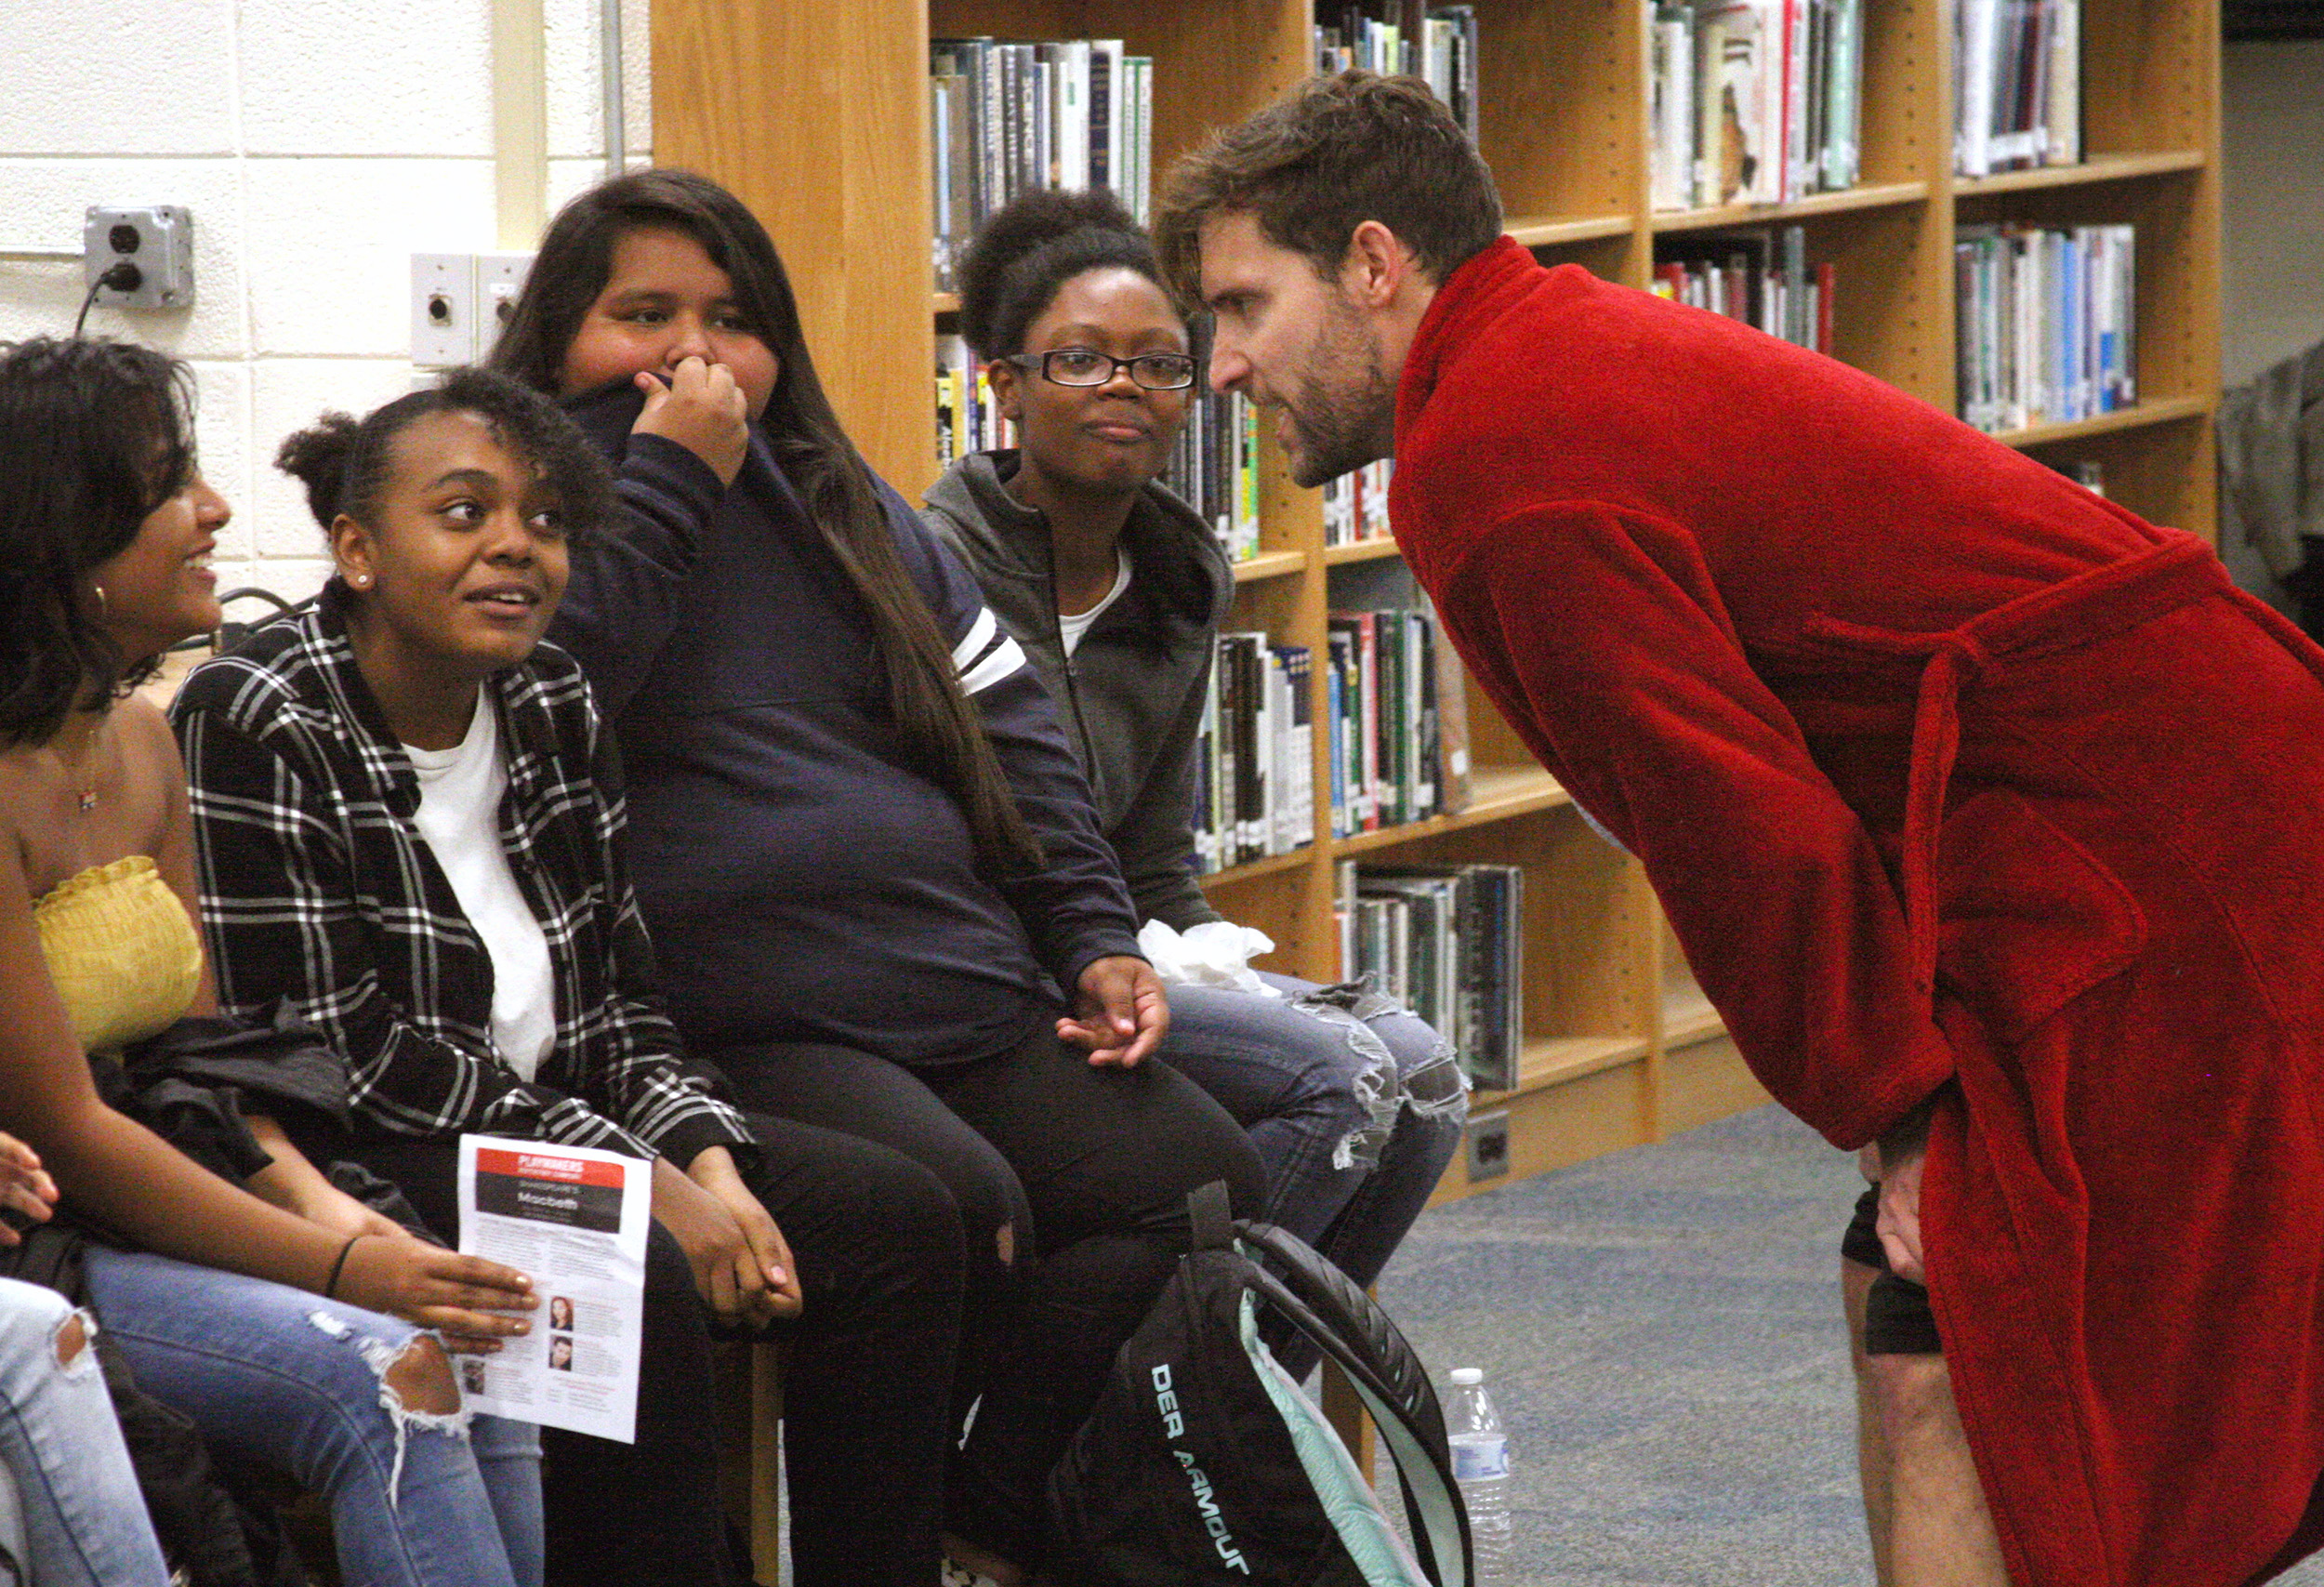 """Actor Adam Poole, right, interacts with audience members during last fall's performance of """"Macbeth"""" in the Jordan-Matthews High School Media Center. PlayMakers Repertory Company returns on October 17 for a free performance of """"Wilder & Wilder."""" (Photo by Chip Pate)"""